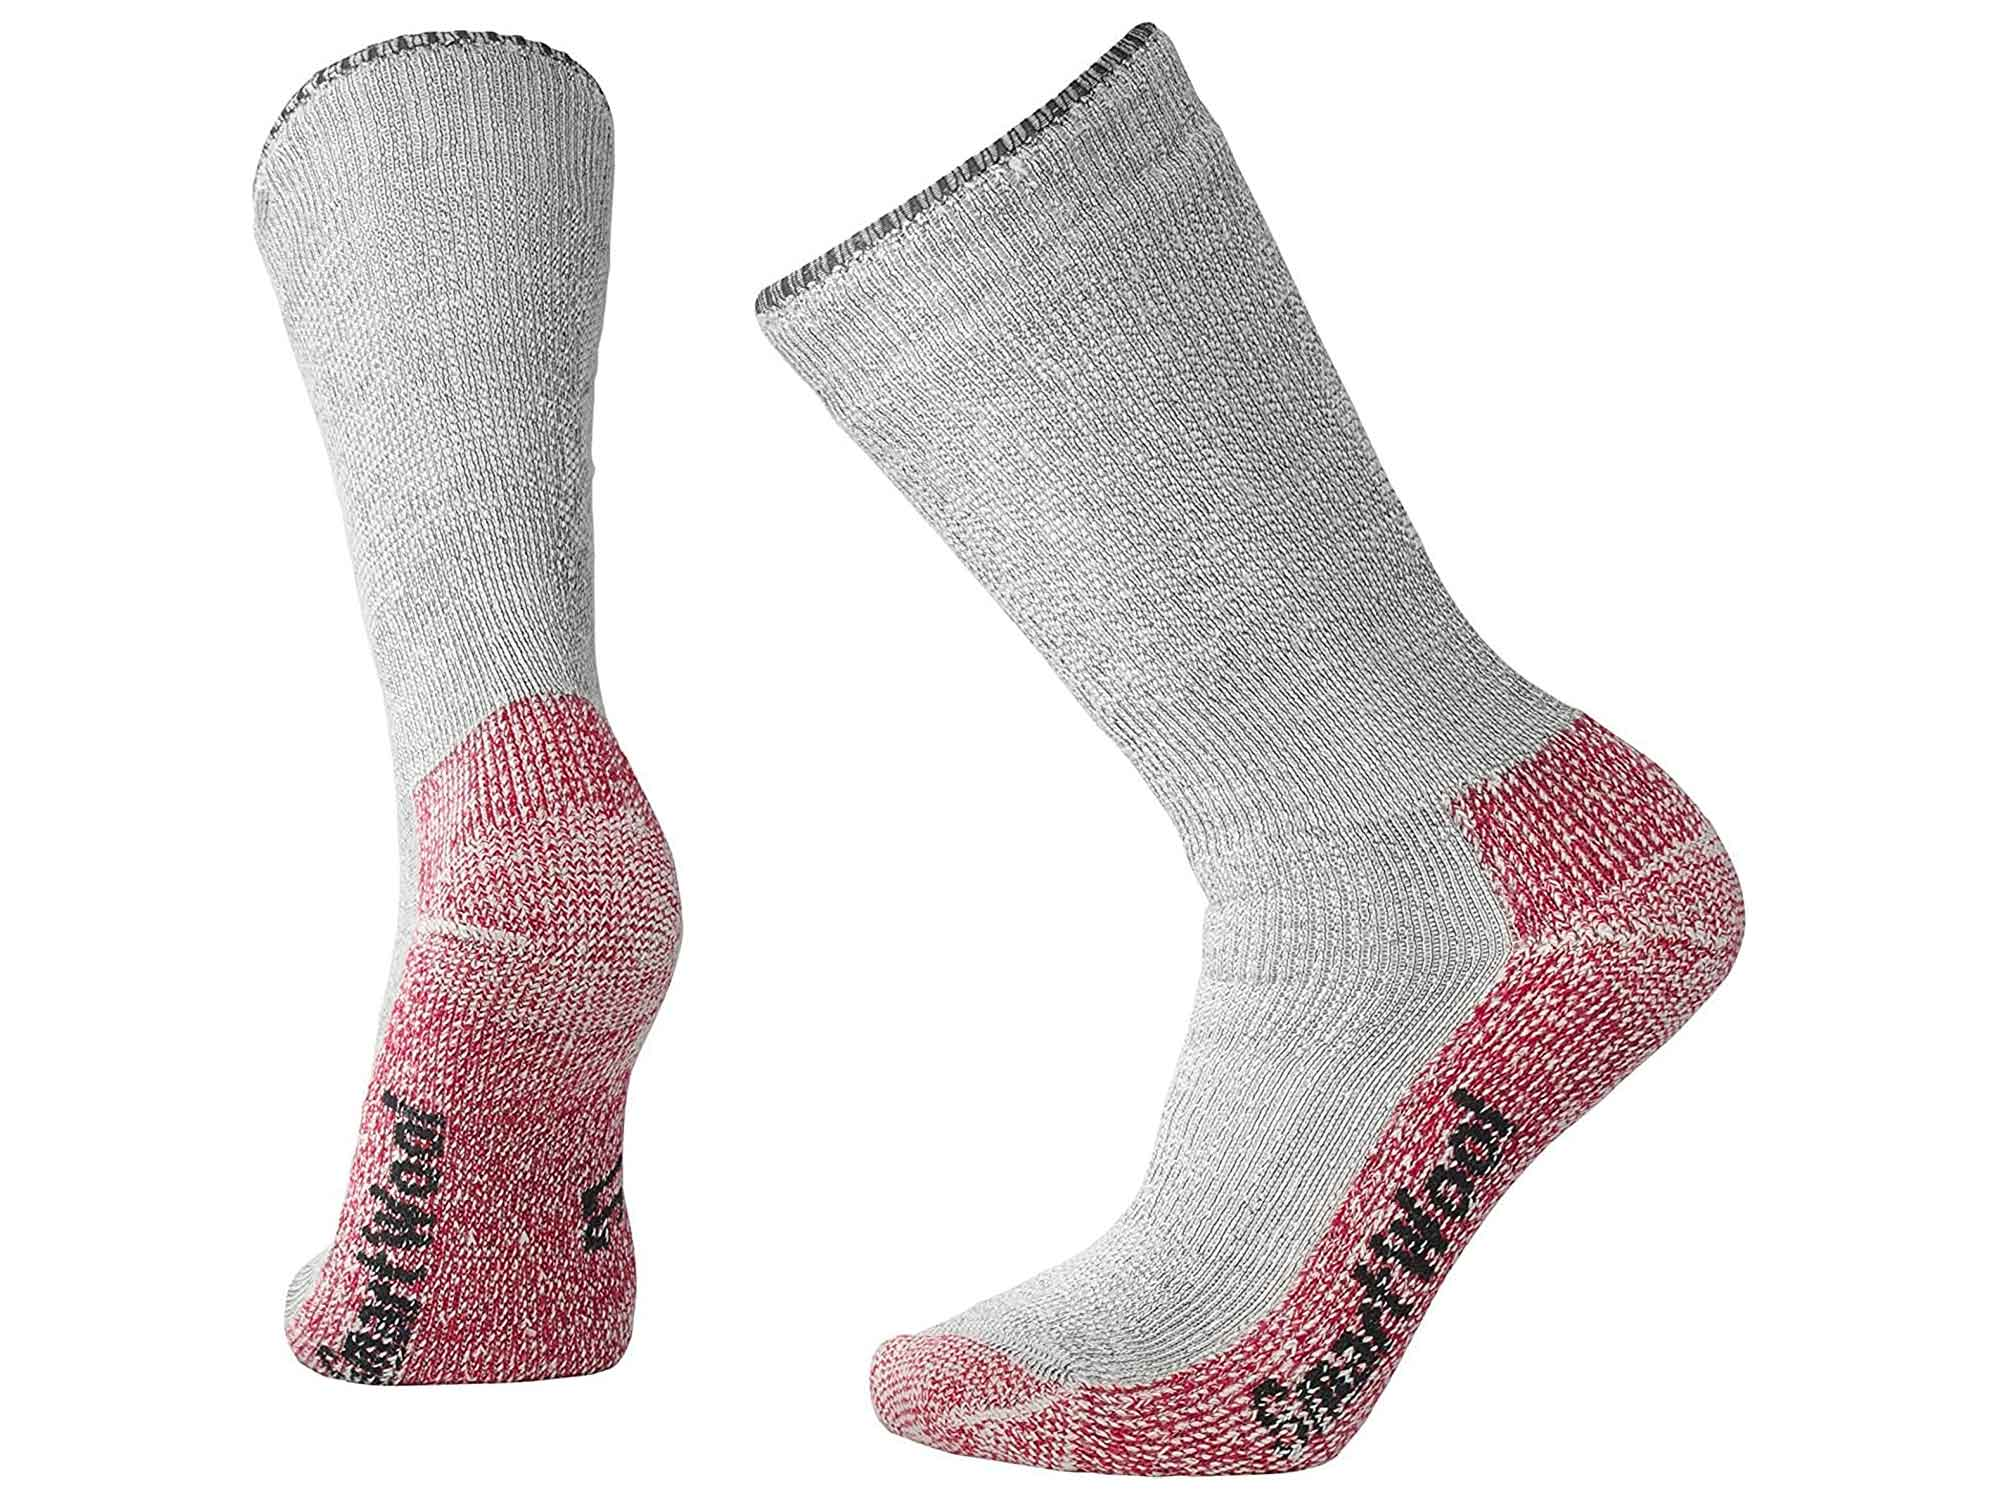 Smartwool Mountaineering Crew Socks - Men's Extra Heavy Cushioned Wool Performance Sock